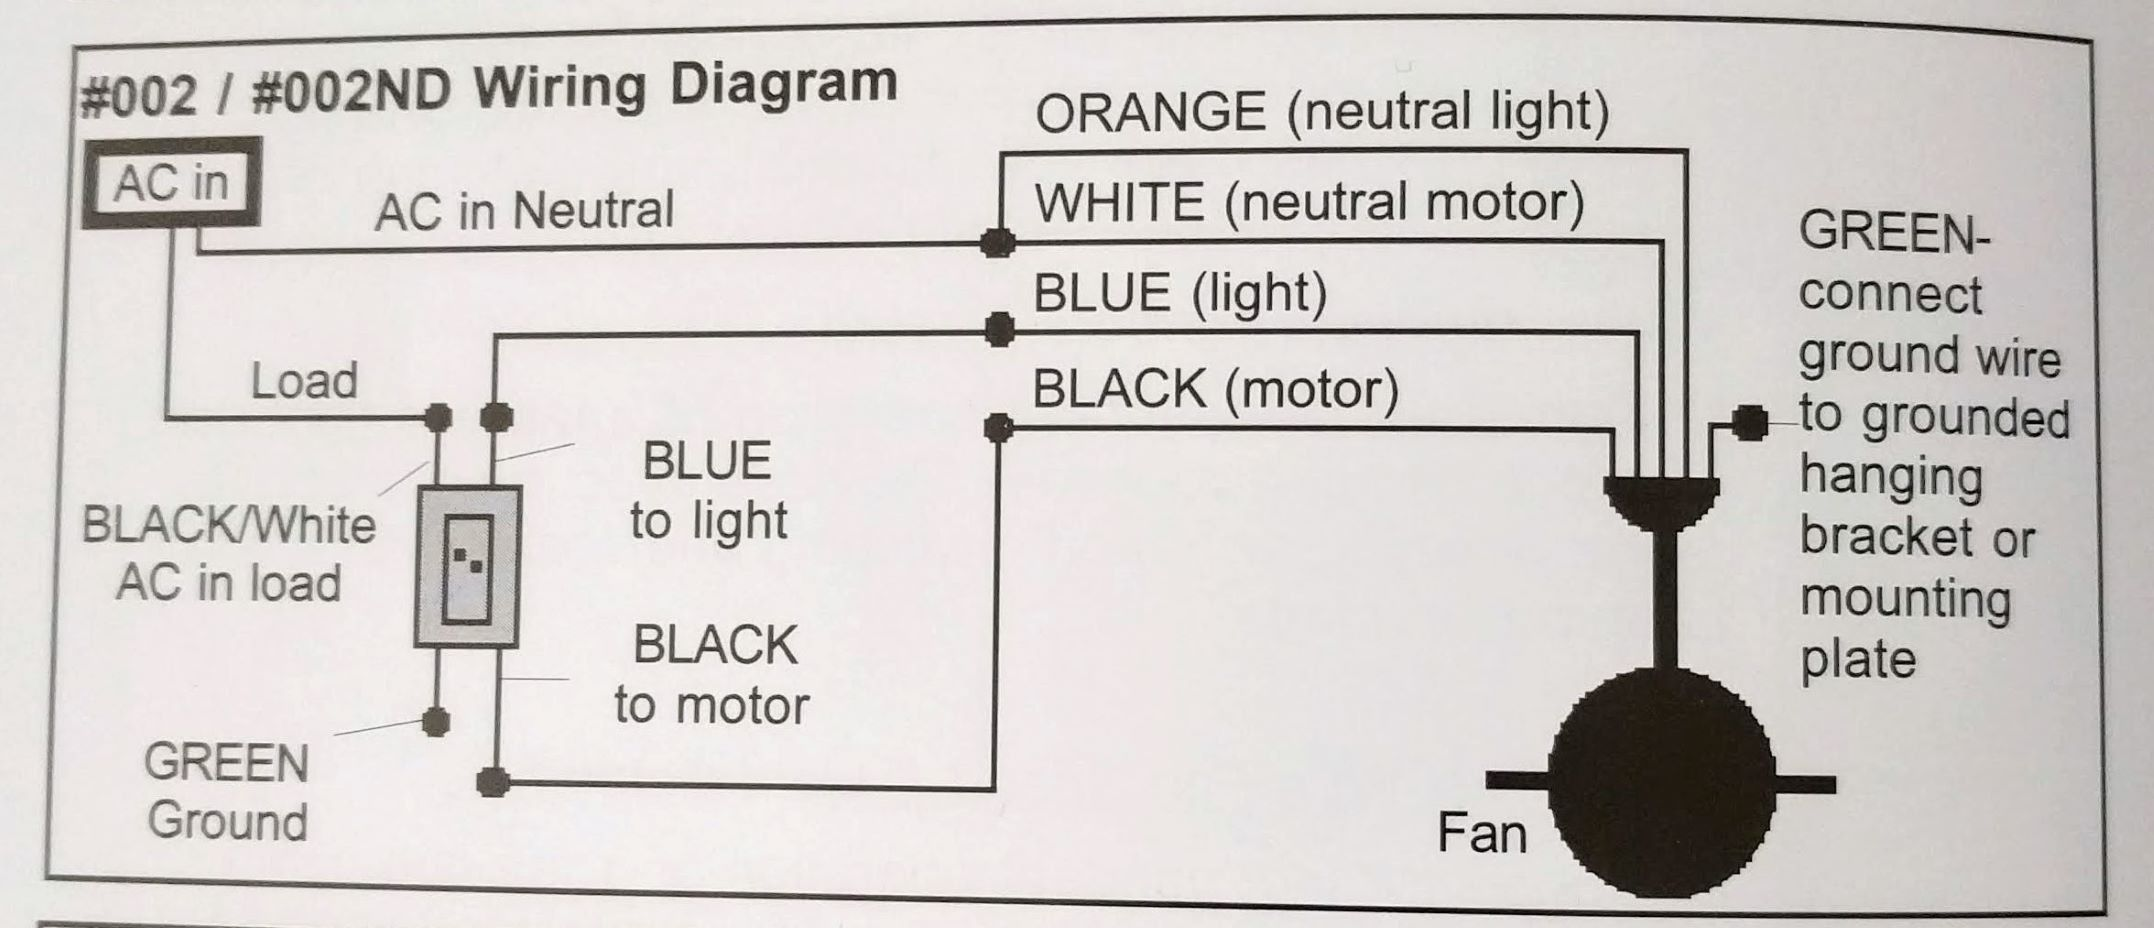 Unique Electrical Wiring Diagram Ceiling Fan Light  Diagram  Diagramtemplate  Diagramsample